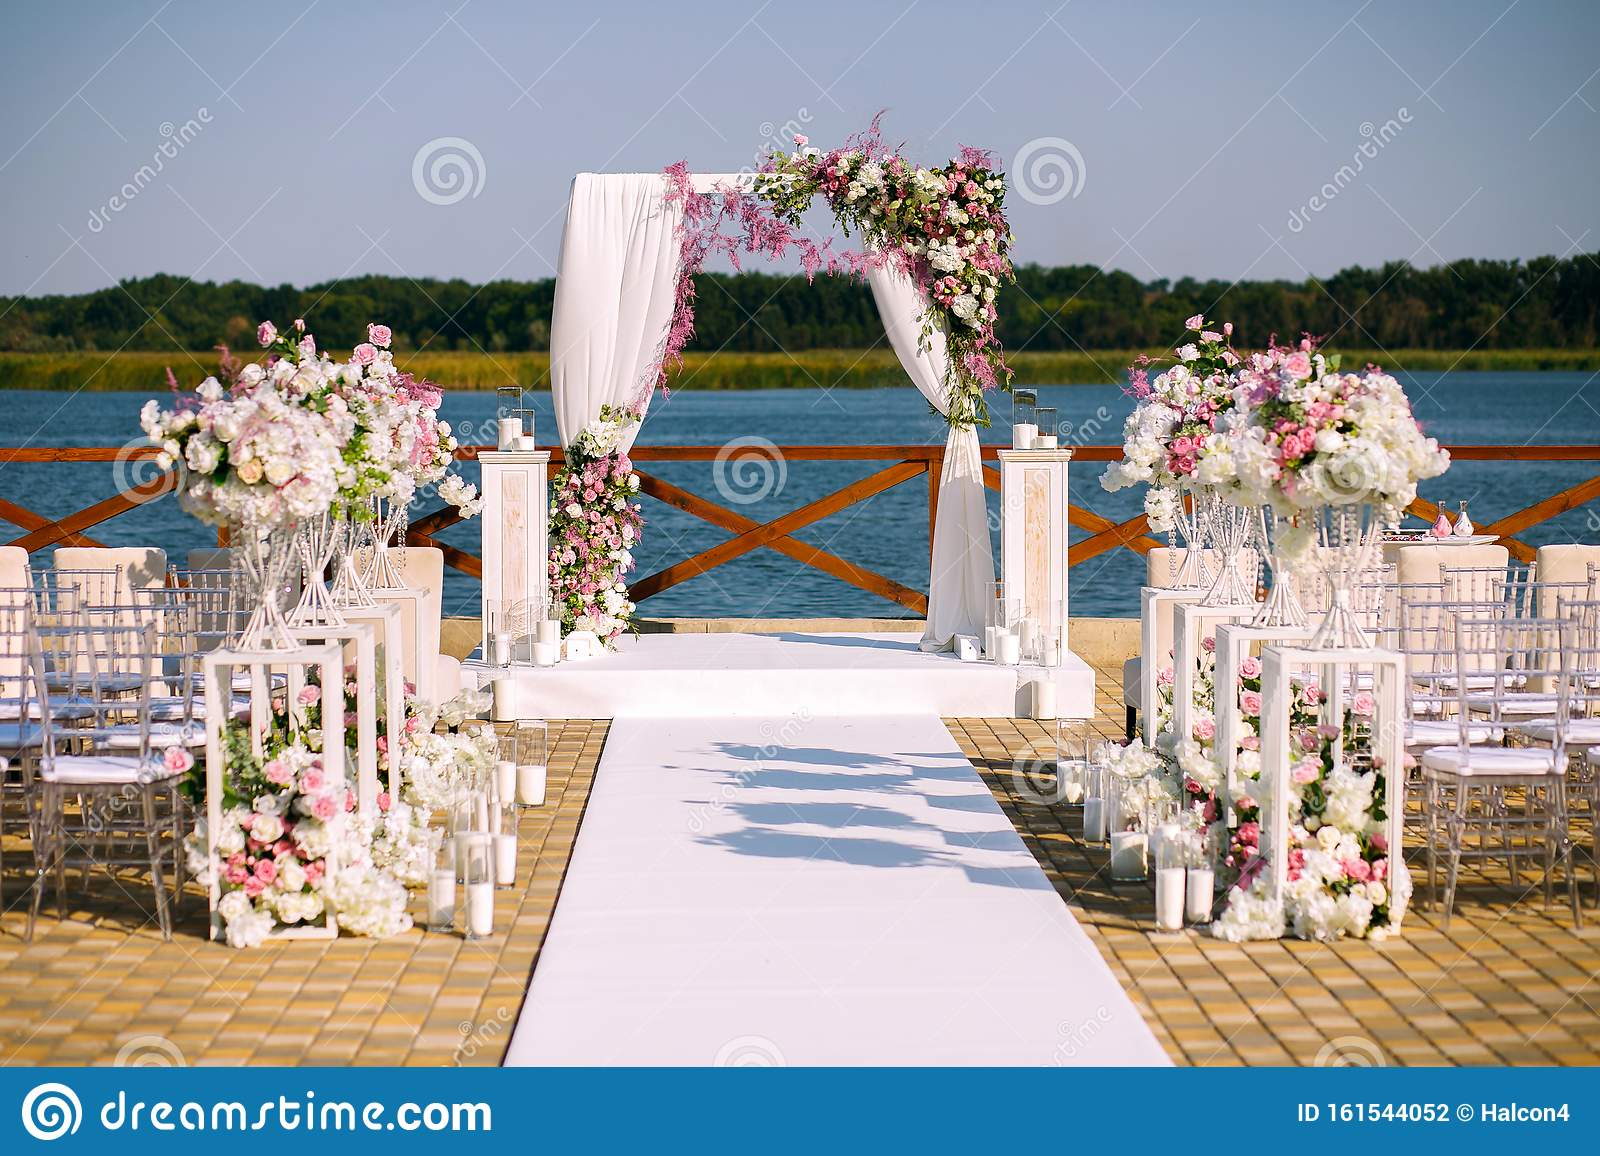 Wedding Ceremony Wedding Arch Wedding Arch Made Of Branches Flowers And Greenery Is On The Green Grass On The River Bank Stock Photo Image Of Arrangement Candles 161544052